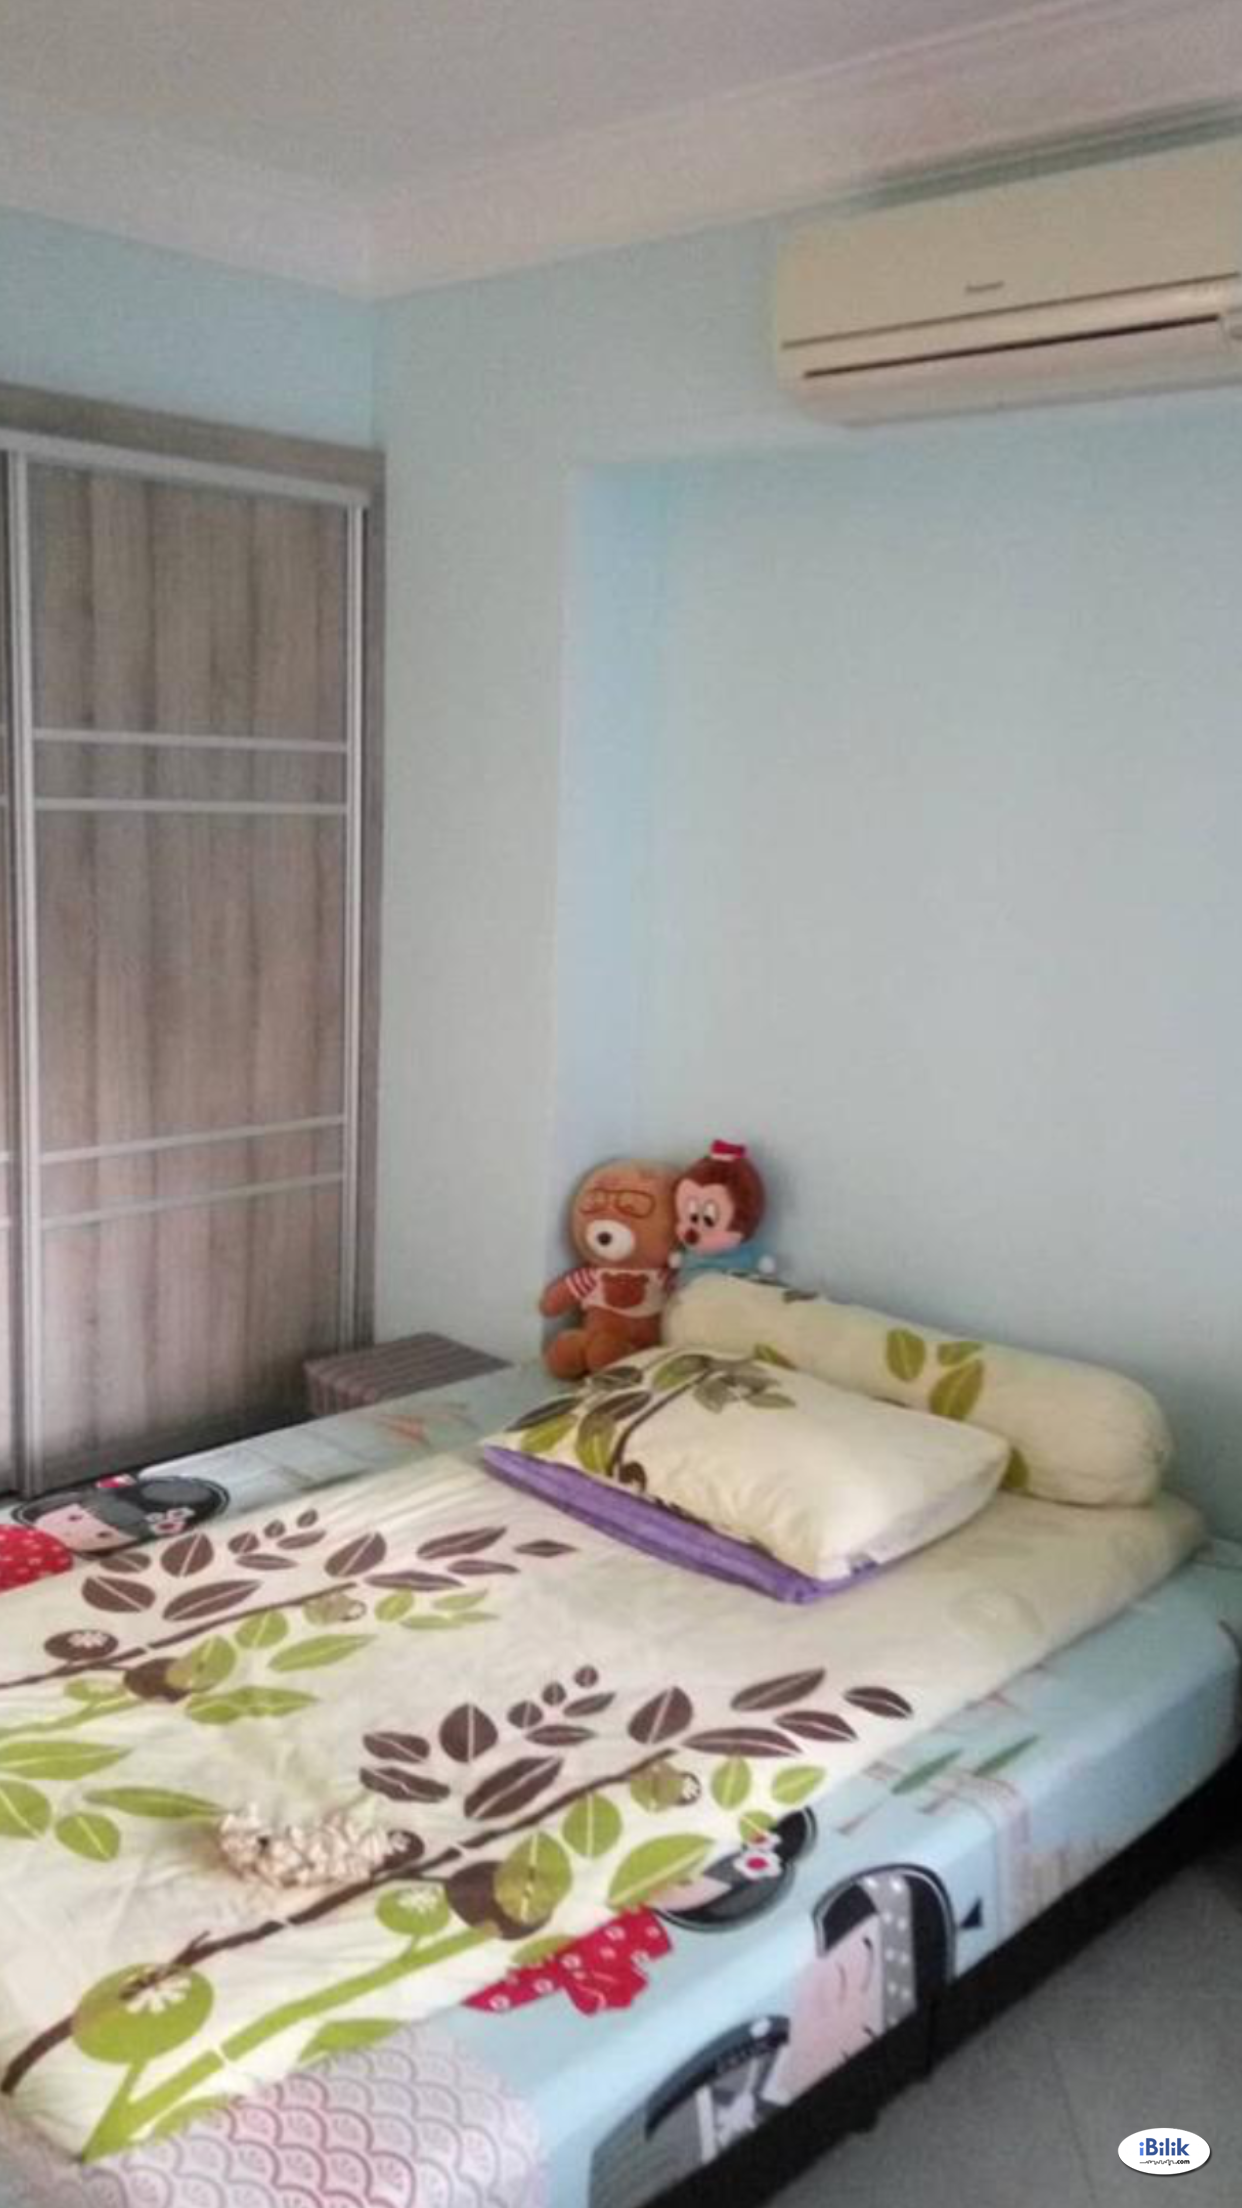 Middle Room at Choa Chu Kang, Singapore